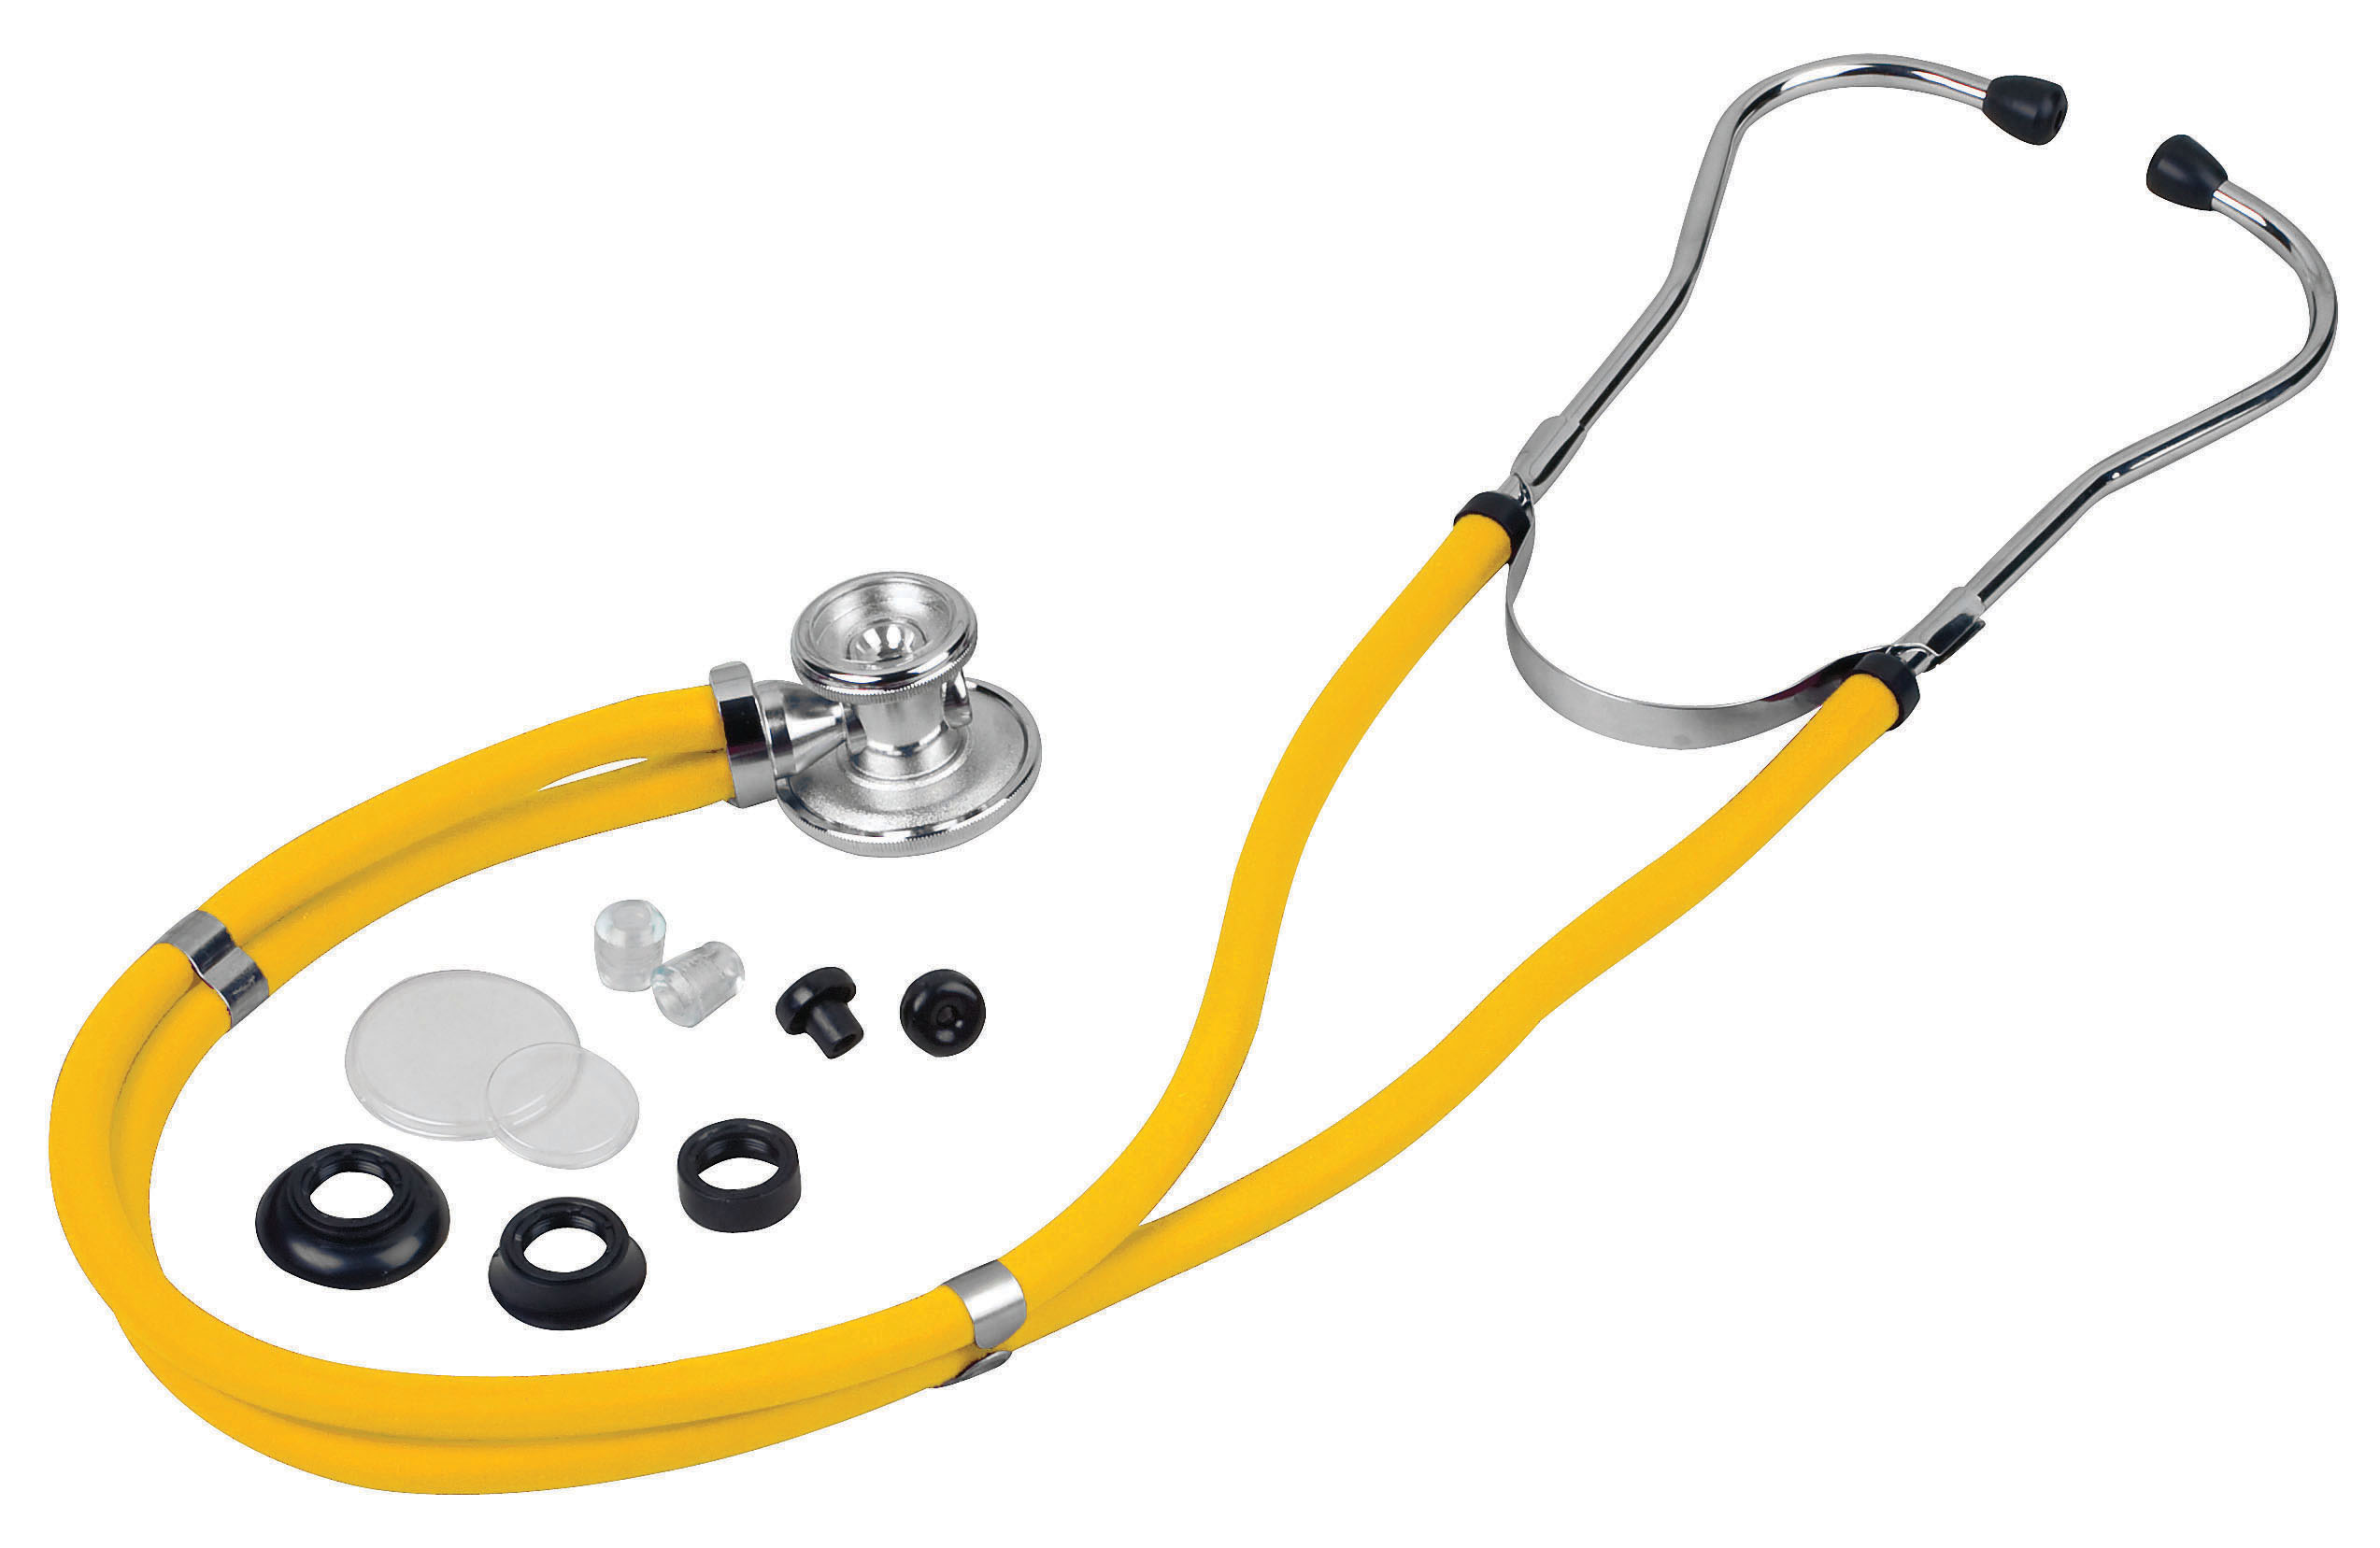 sterling-series-sprague-rappaport-type-stethoscope-yellow-slider-pack-05-11114-veridian-2.jpg